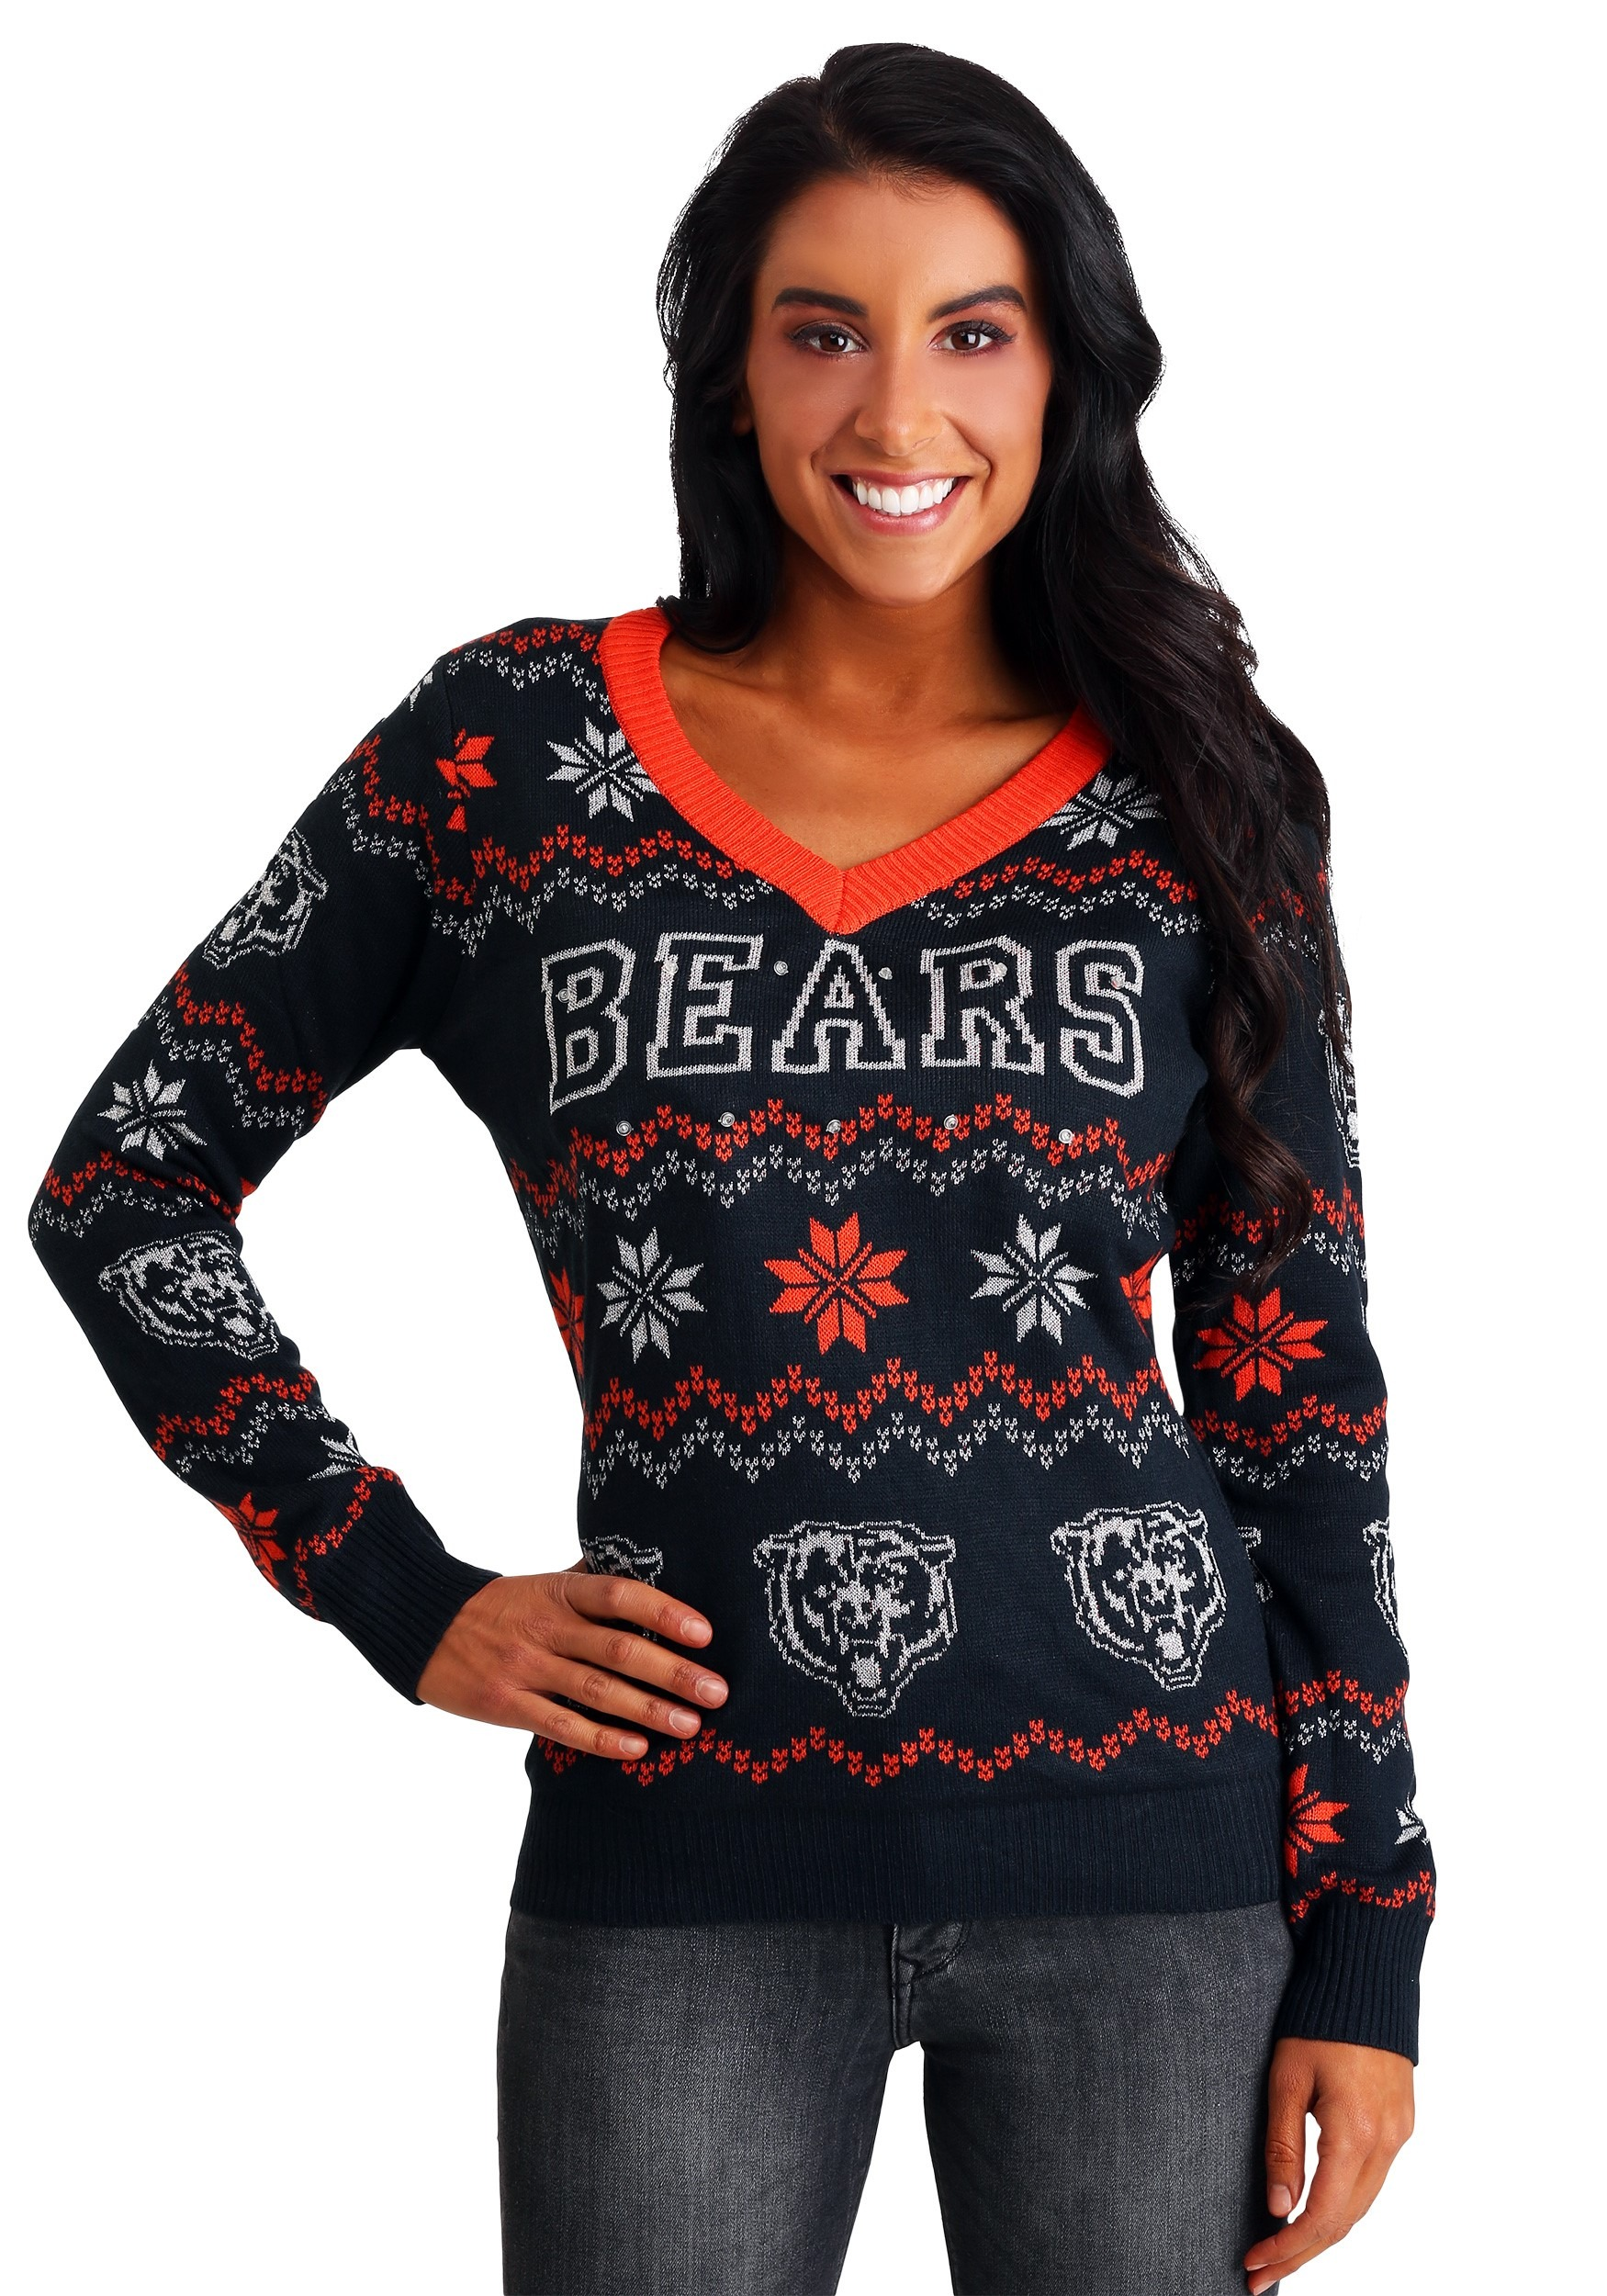 aa109198be8 Chicago Bears Women s Light Up V-Neck Bluetooth Ugly Christmas Sweater